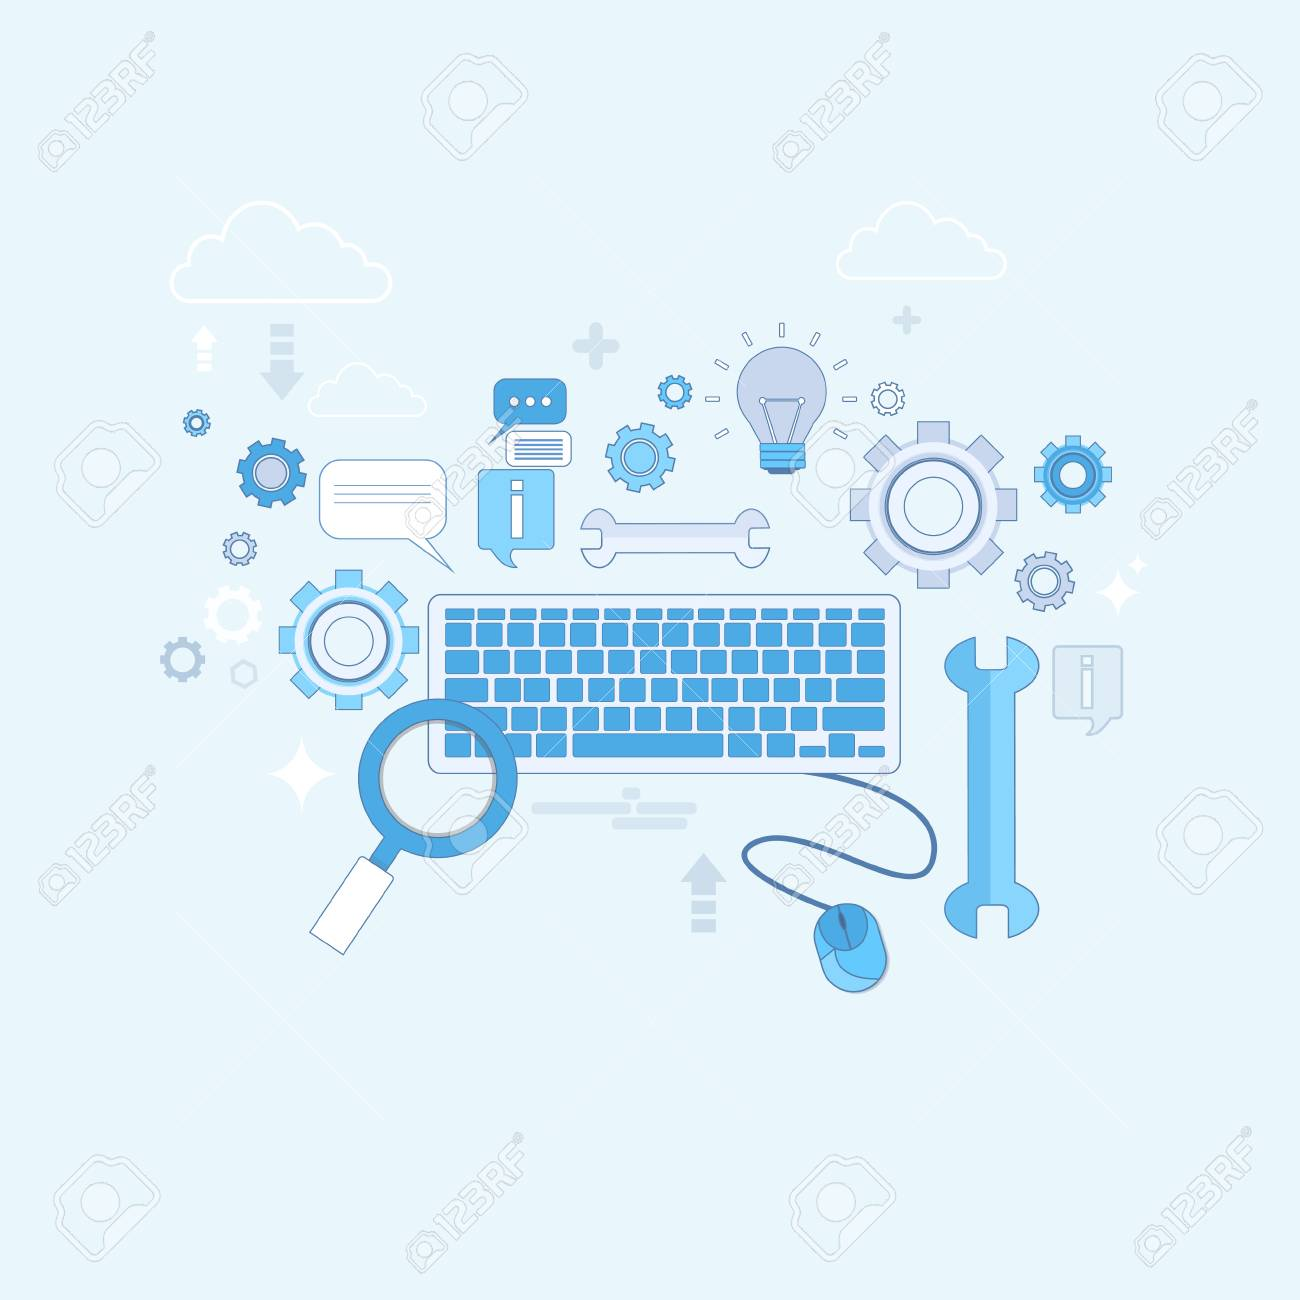 Computer Keyboard Mouse Banner Thin Line Vector Illustration Royalty Free Cliparts Vectors And Stock Illustration Image 67467306